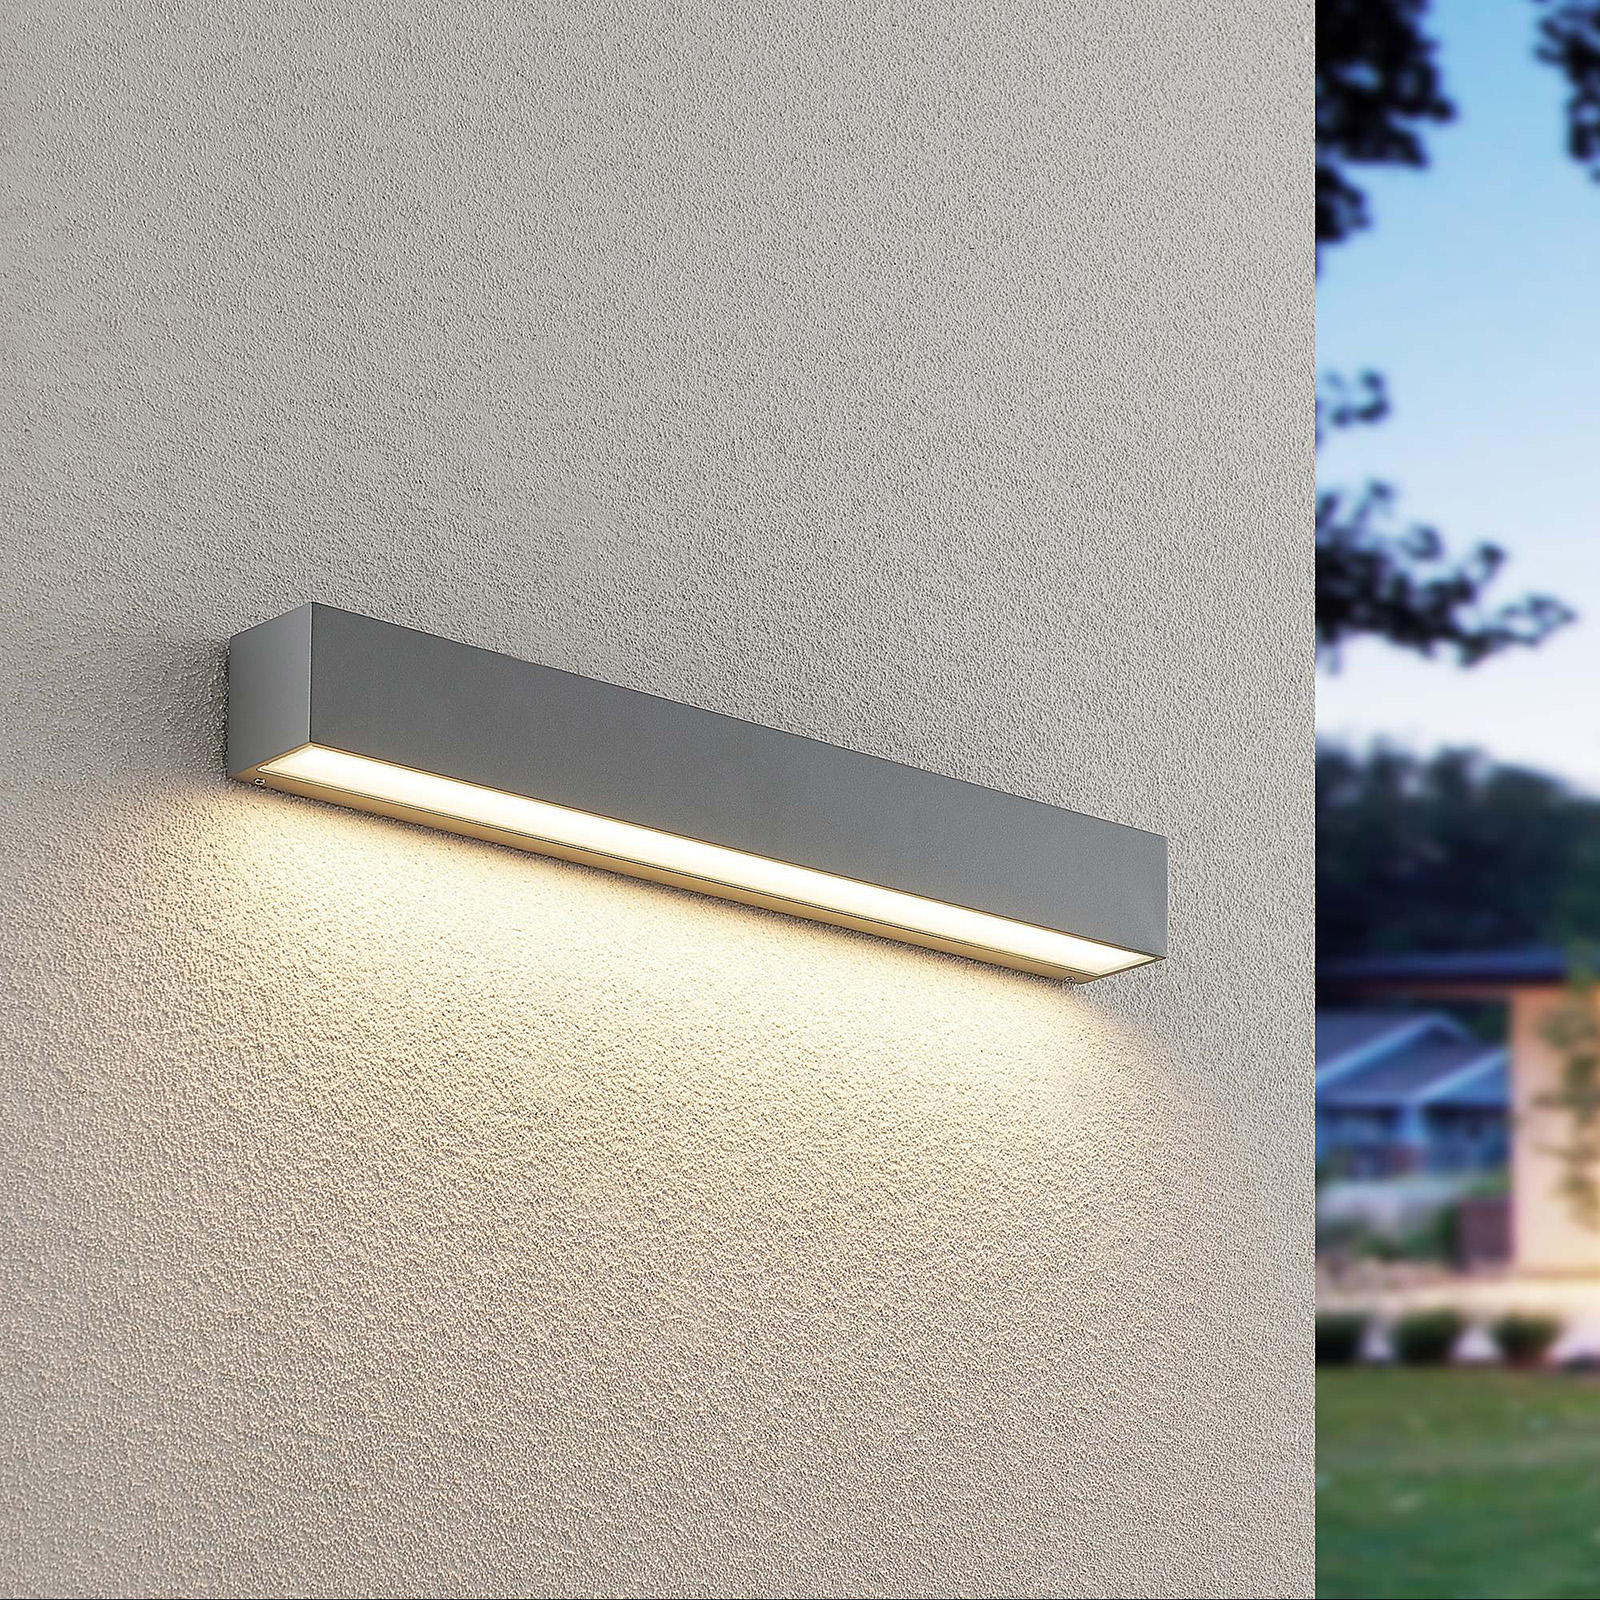 Lucande Lengo applique LED, Down argent 50 cm